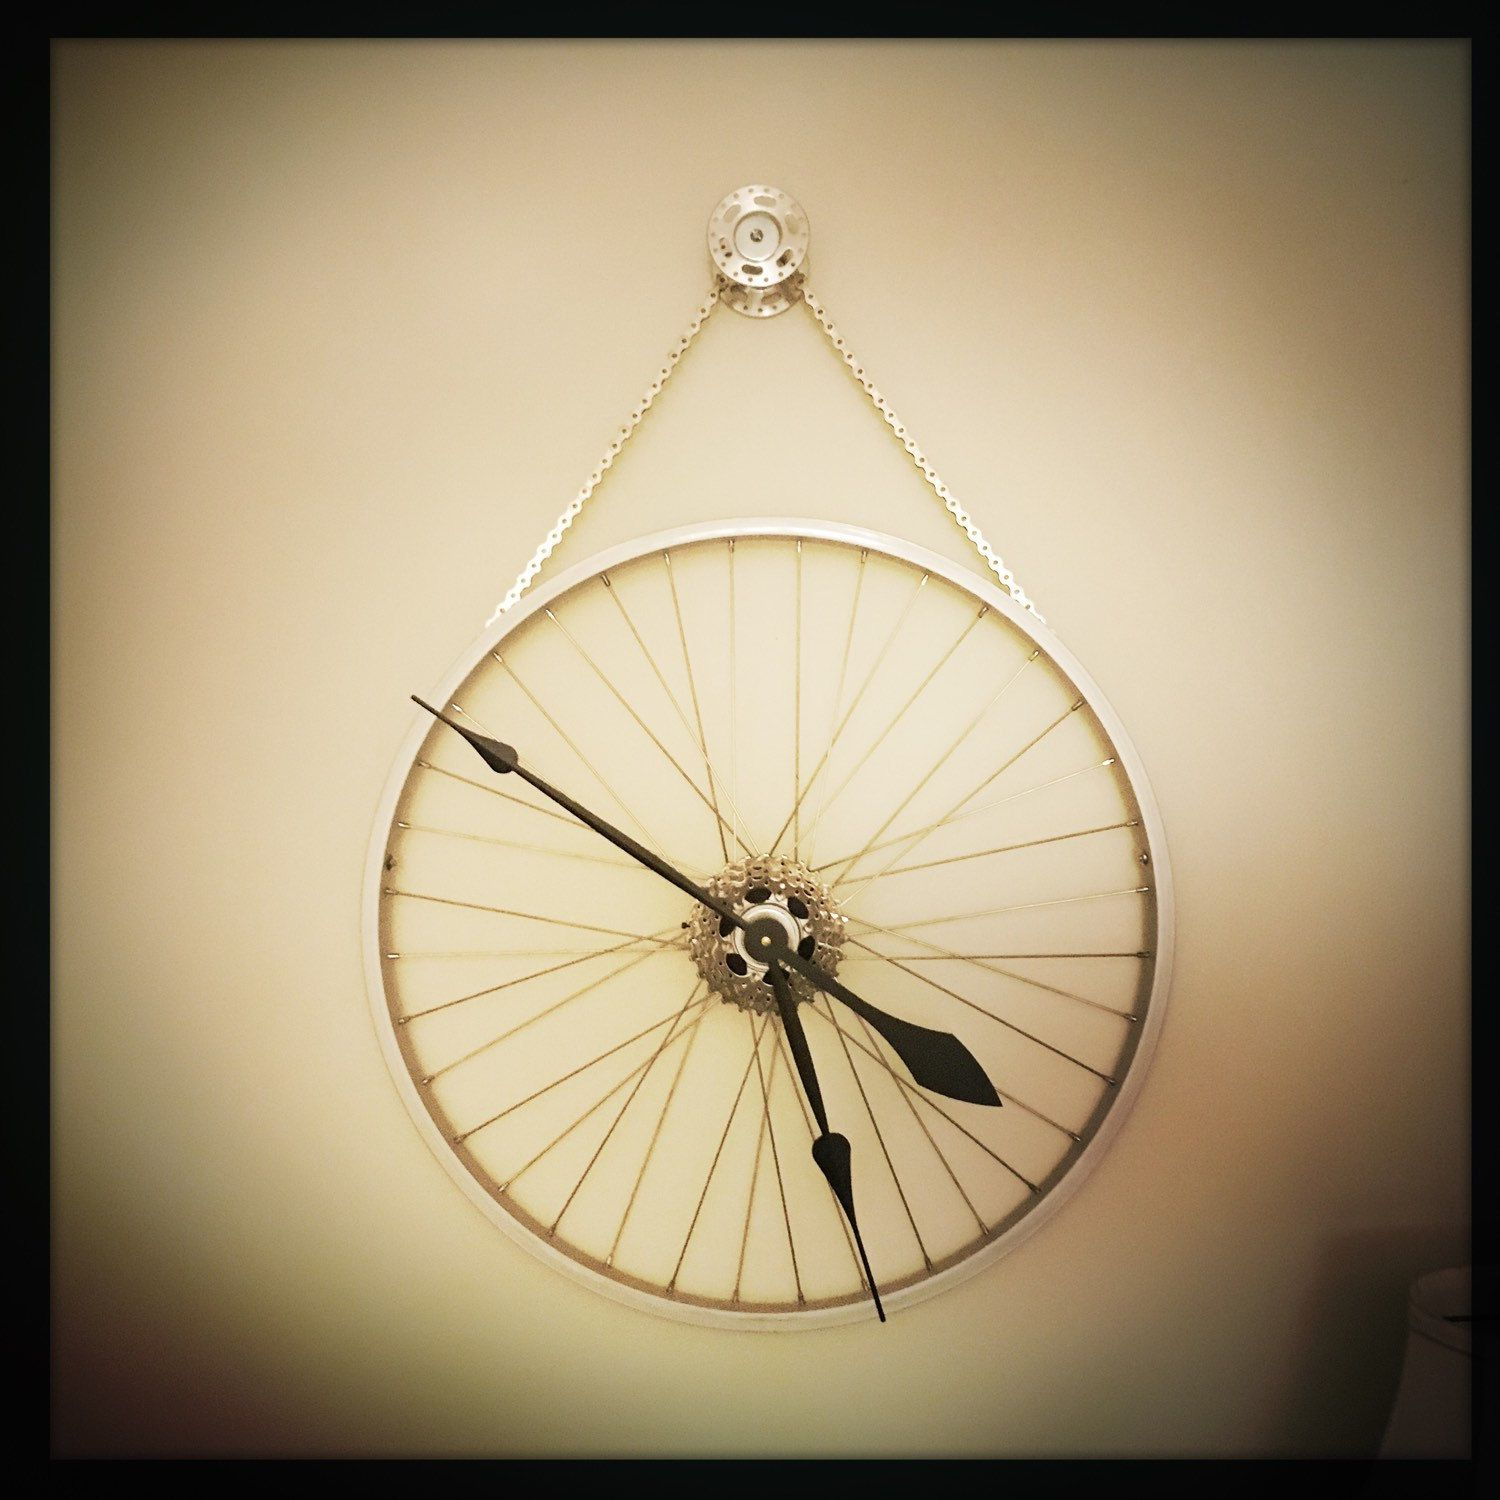 Bike wheel clock oversized wall clock industrial decor unique bike wheel clock oversized wall clock industrial decor unique wedding gift idea steampunk wall clock bicycle gift for men amipublicfo Images